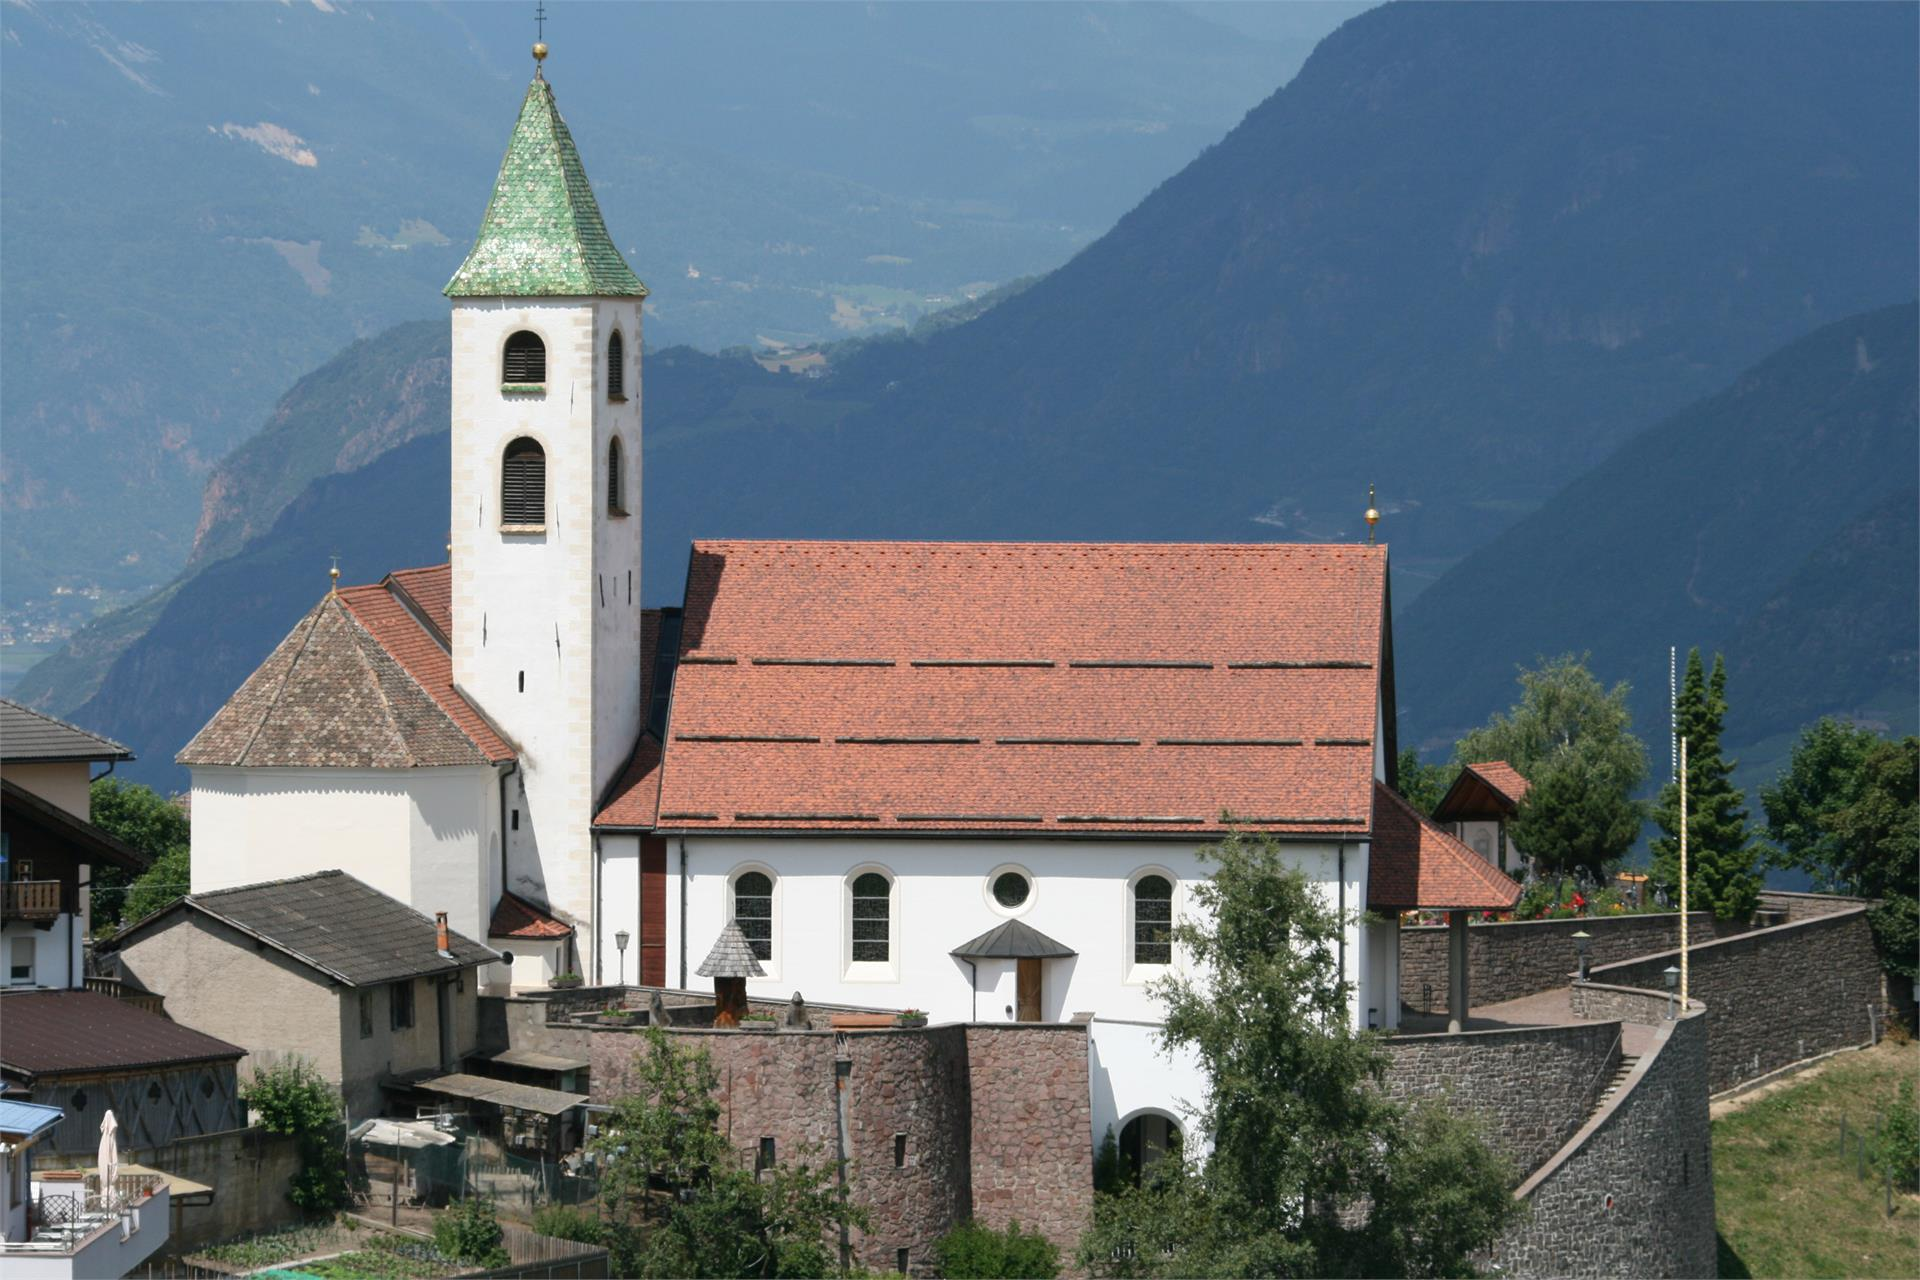 The parish church of Collepietra